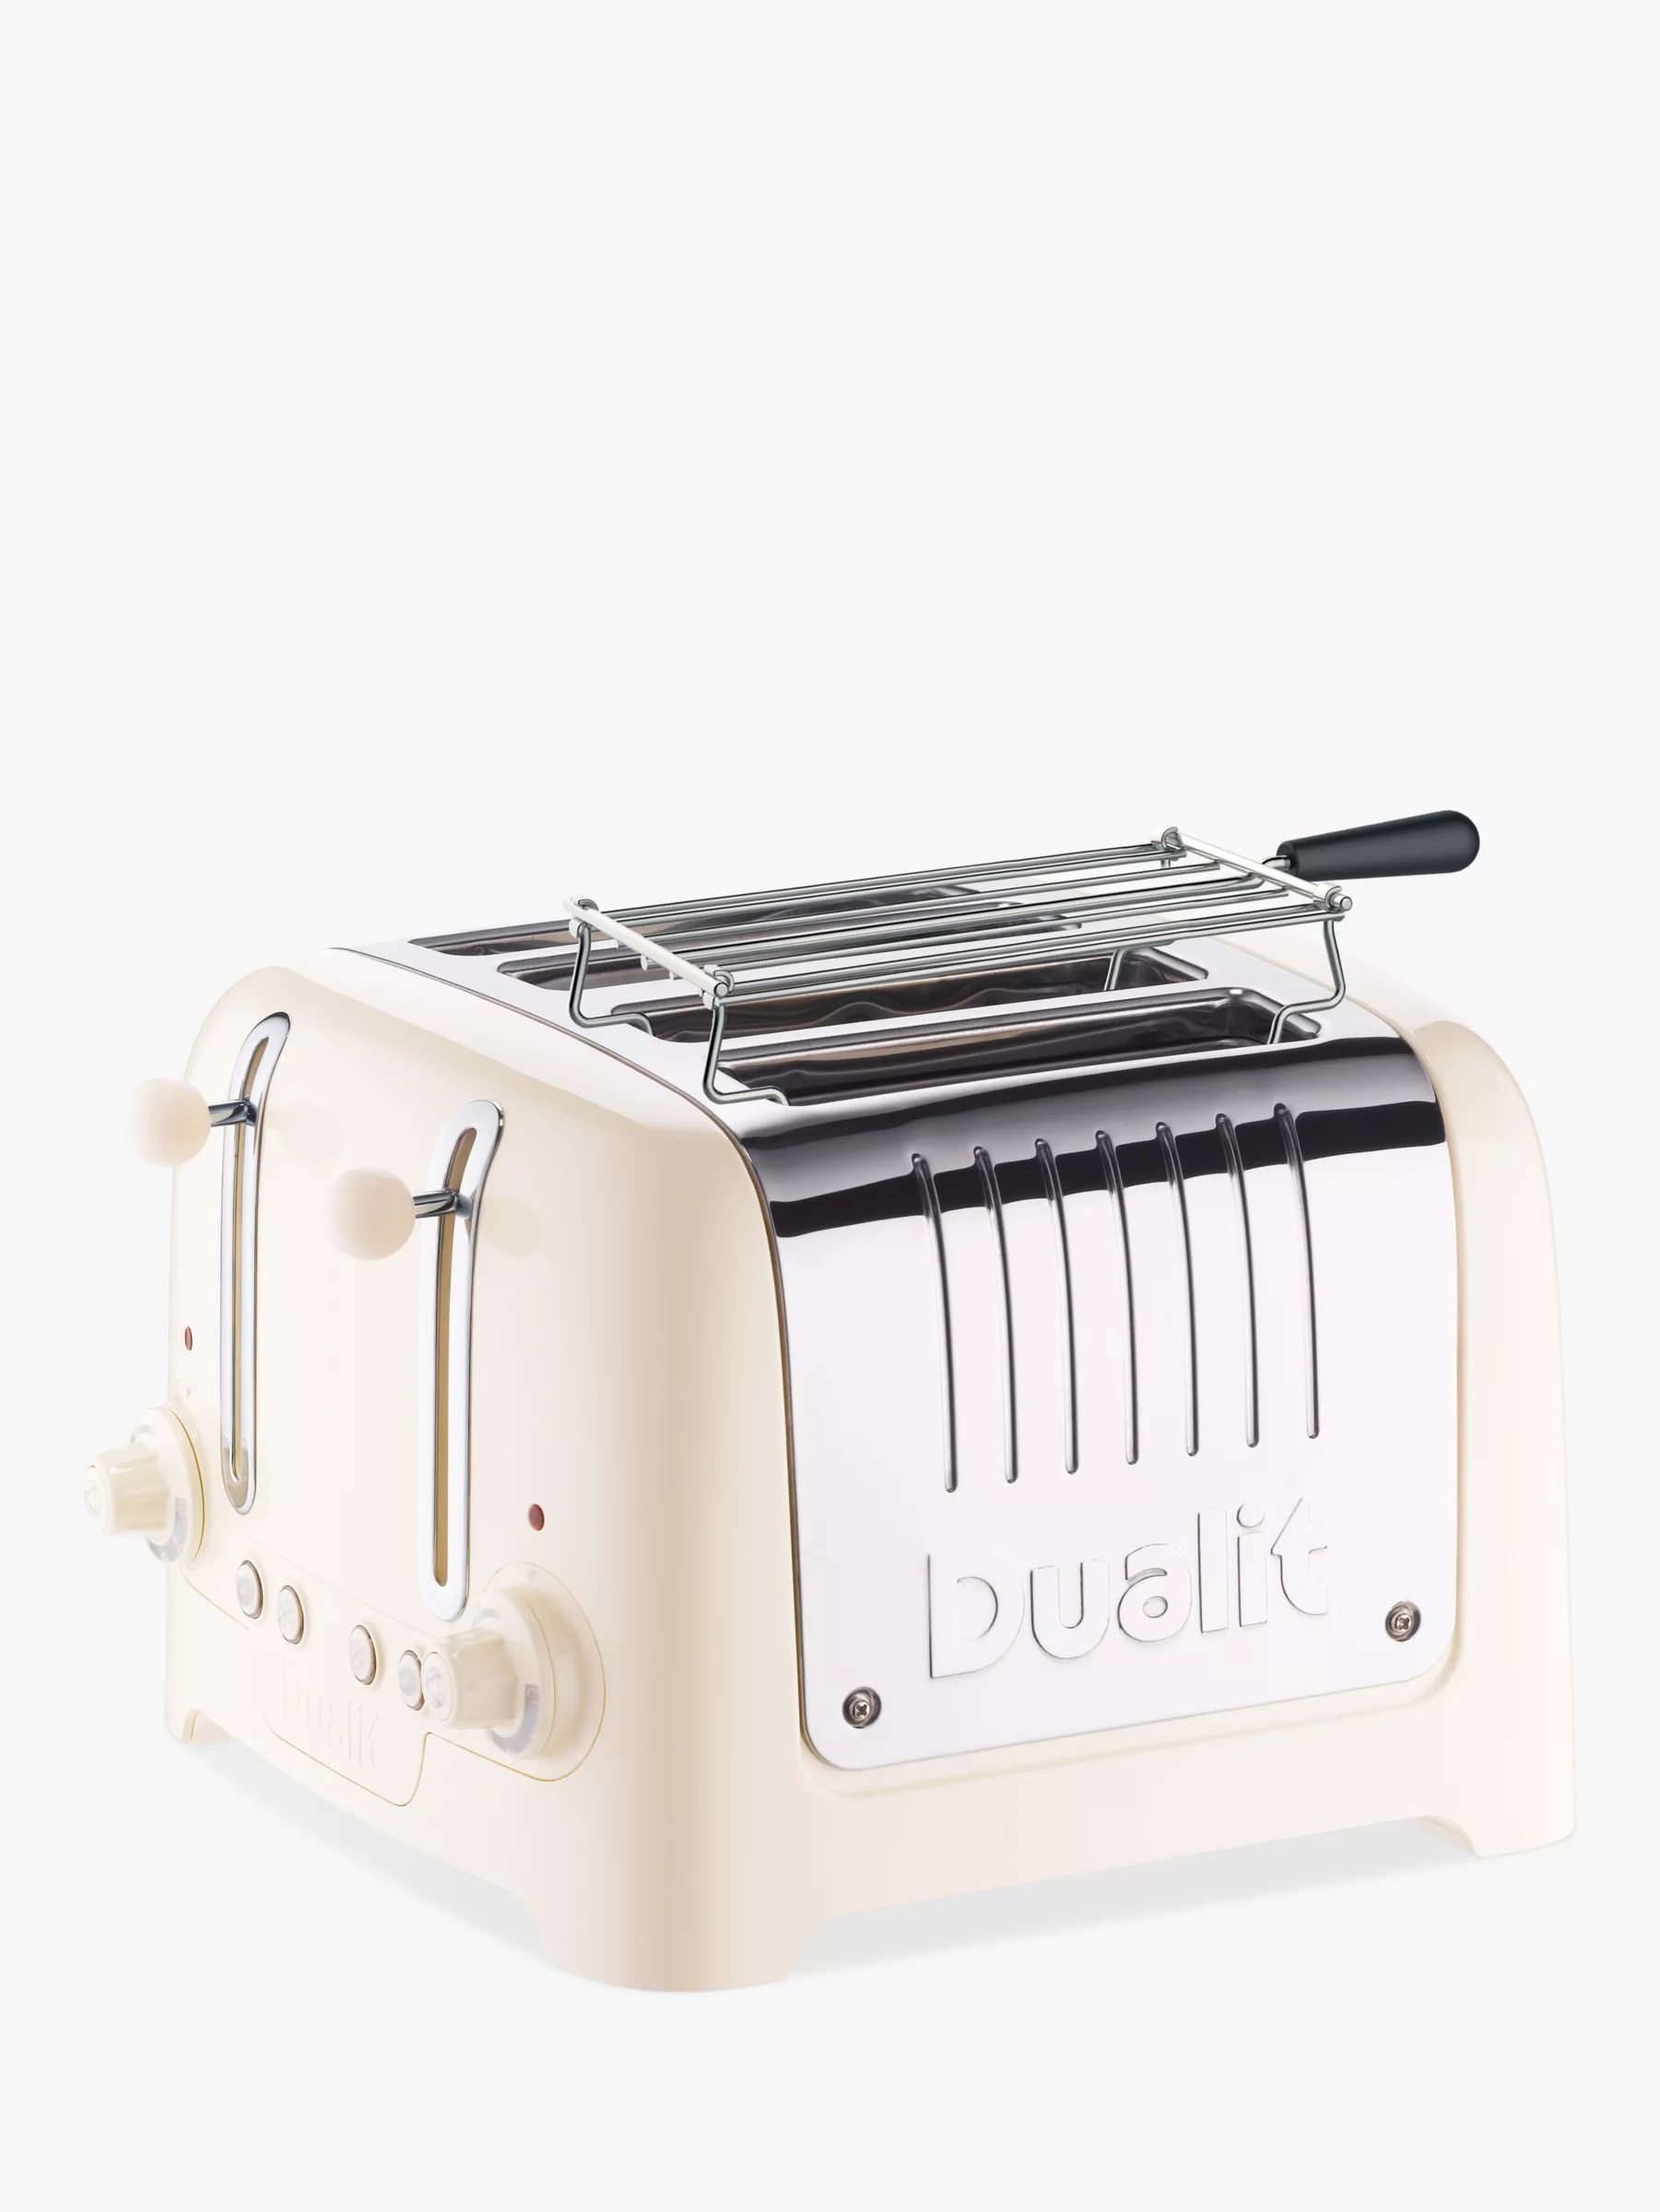 dualit lite 4 slice toaster with warming rack canvas white